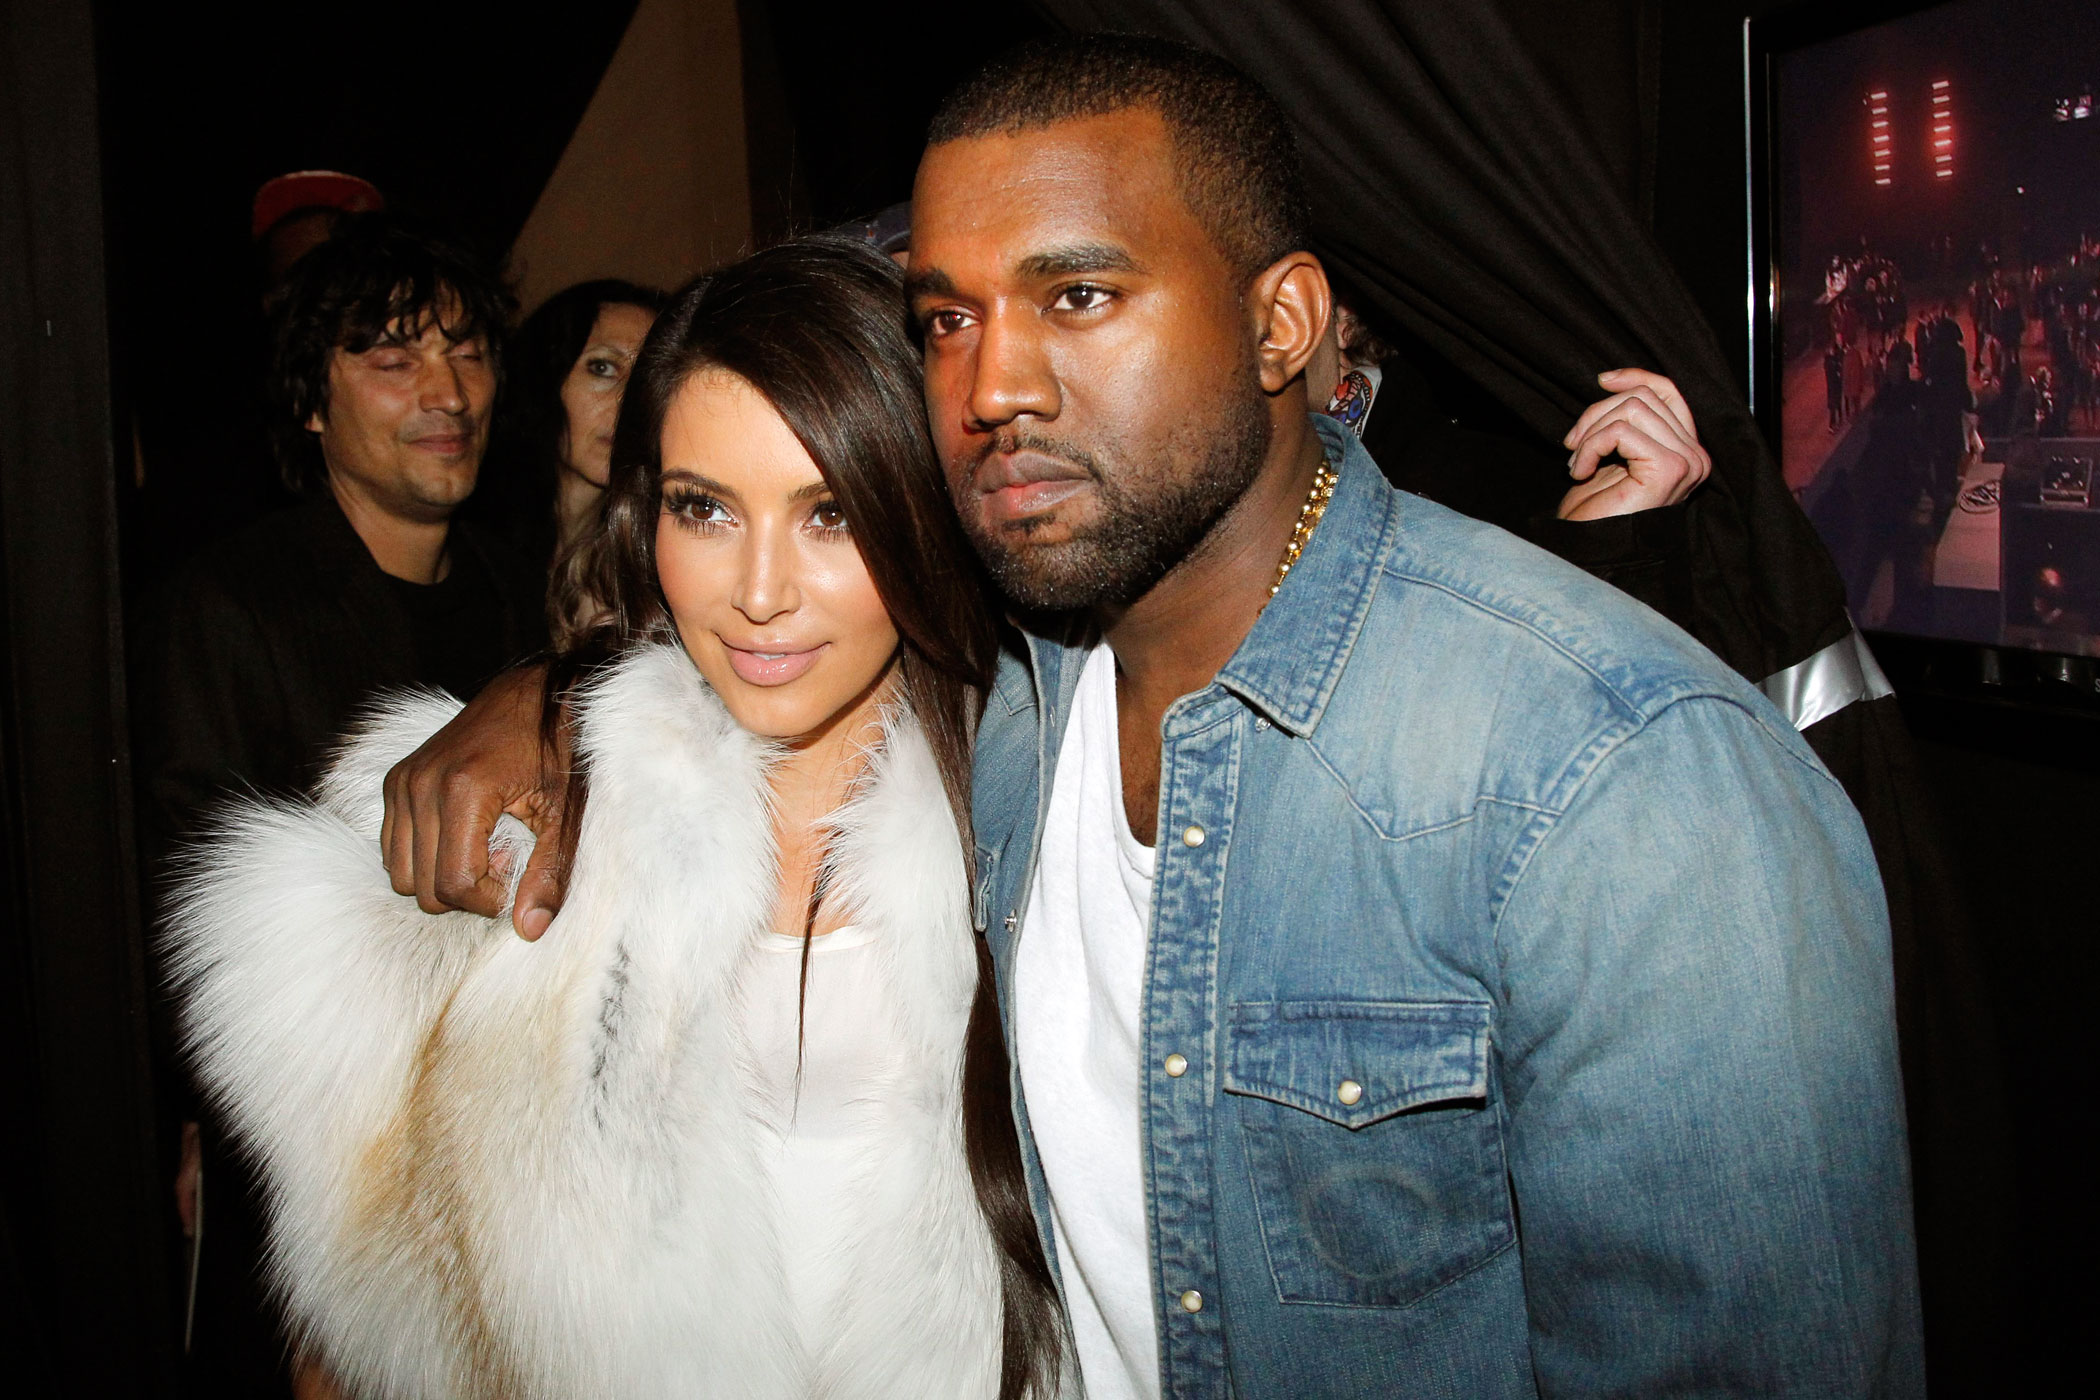 Kim Kardashian and Kanye West have publicly supported Hillary Clinton.